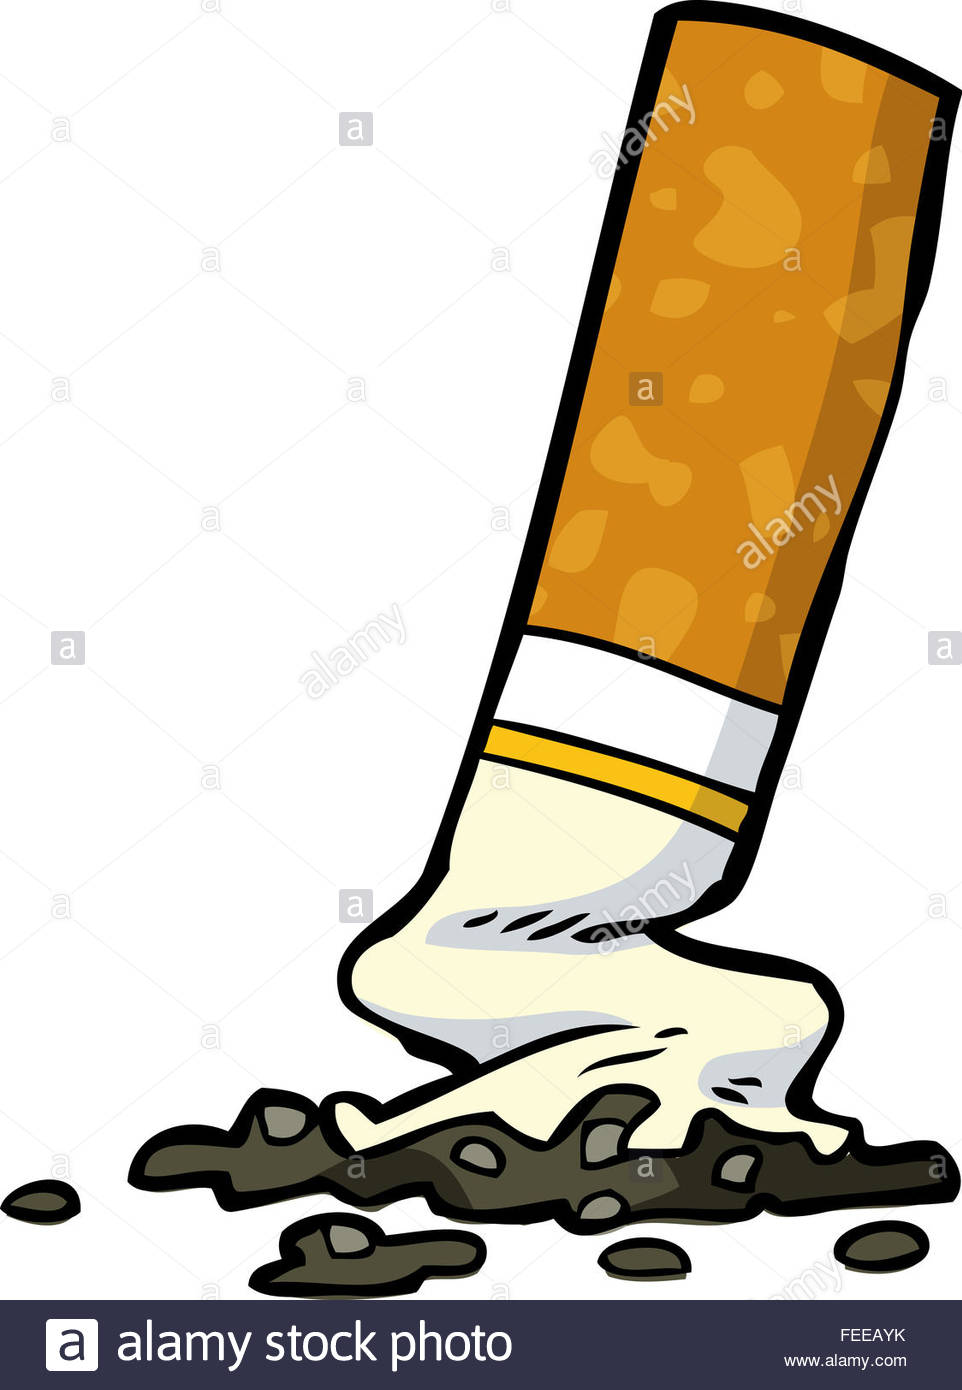 962x1390 Cartoon Cigarette Butt On A White Background Stock Photo, Royalty